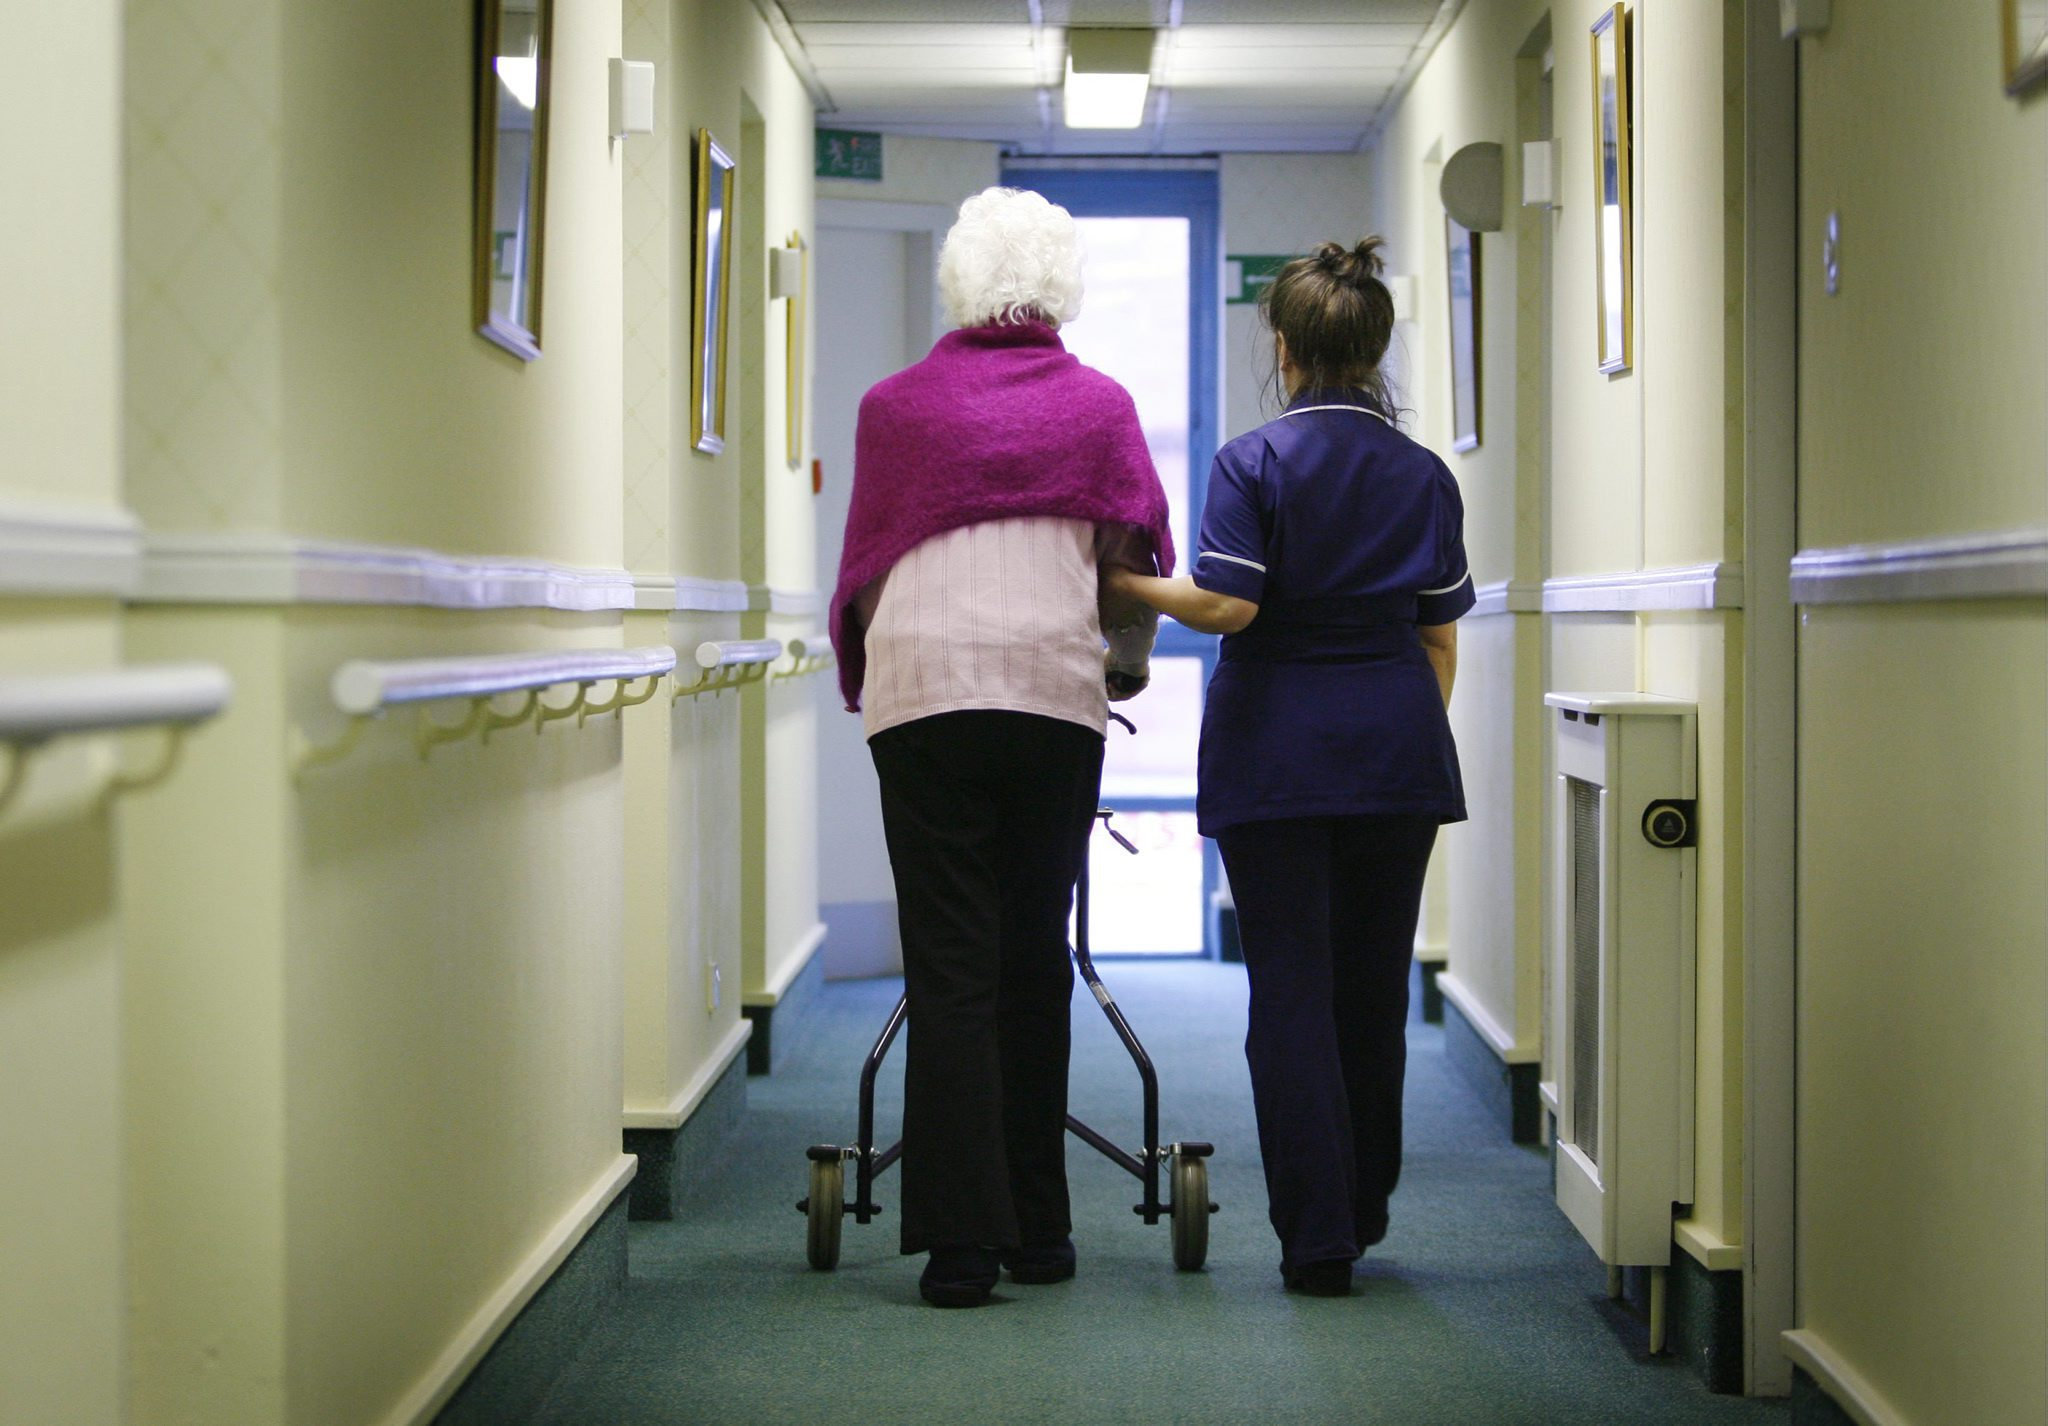 MPs from across political divide brand social care system 'not fit for purpose'